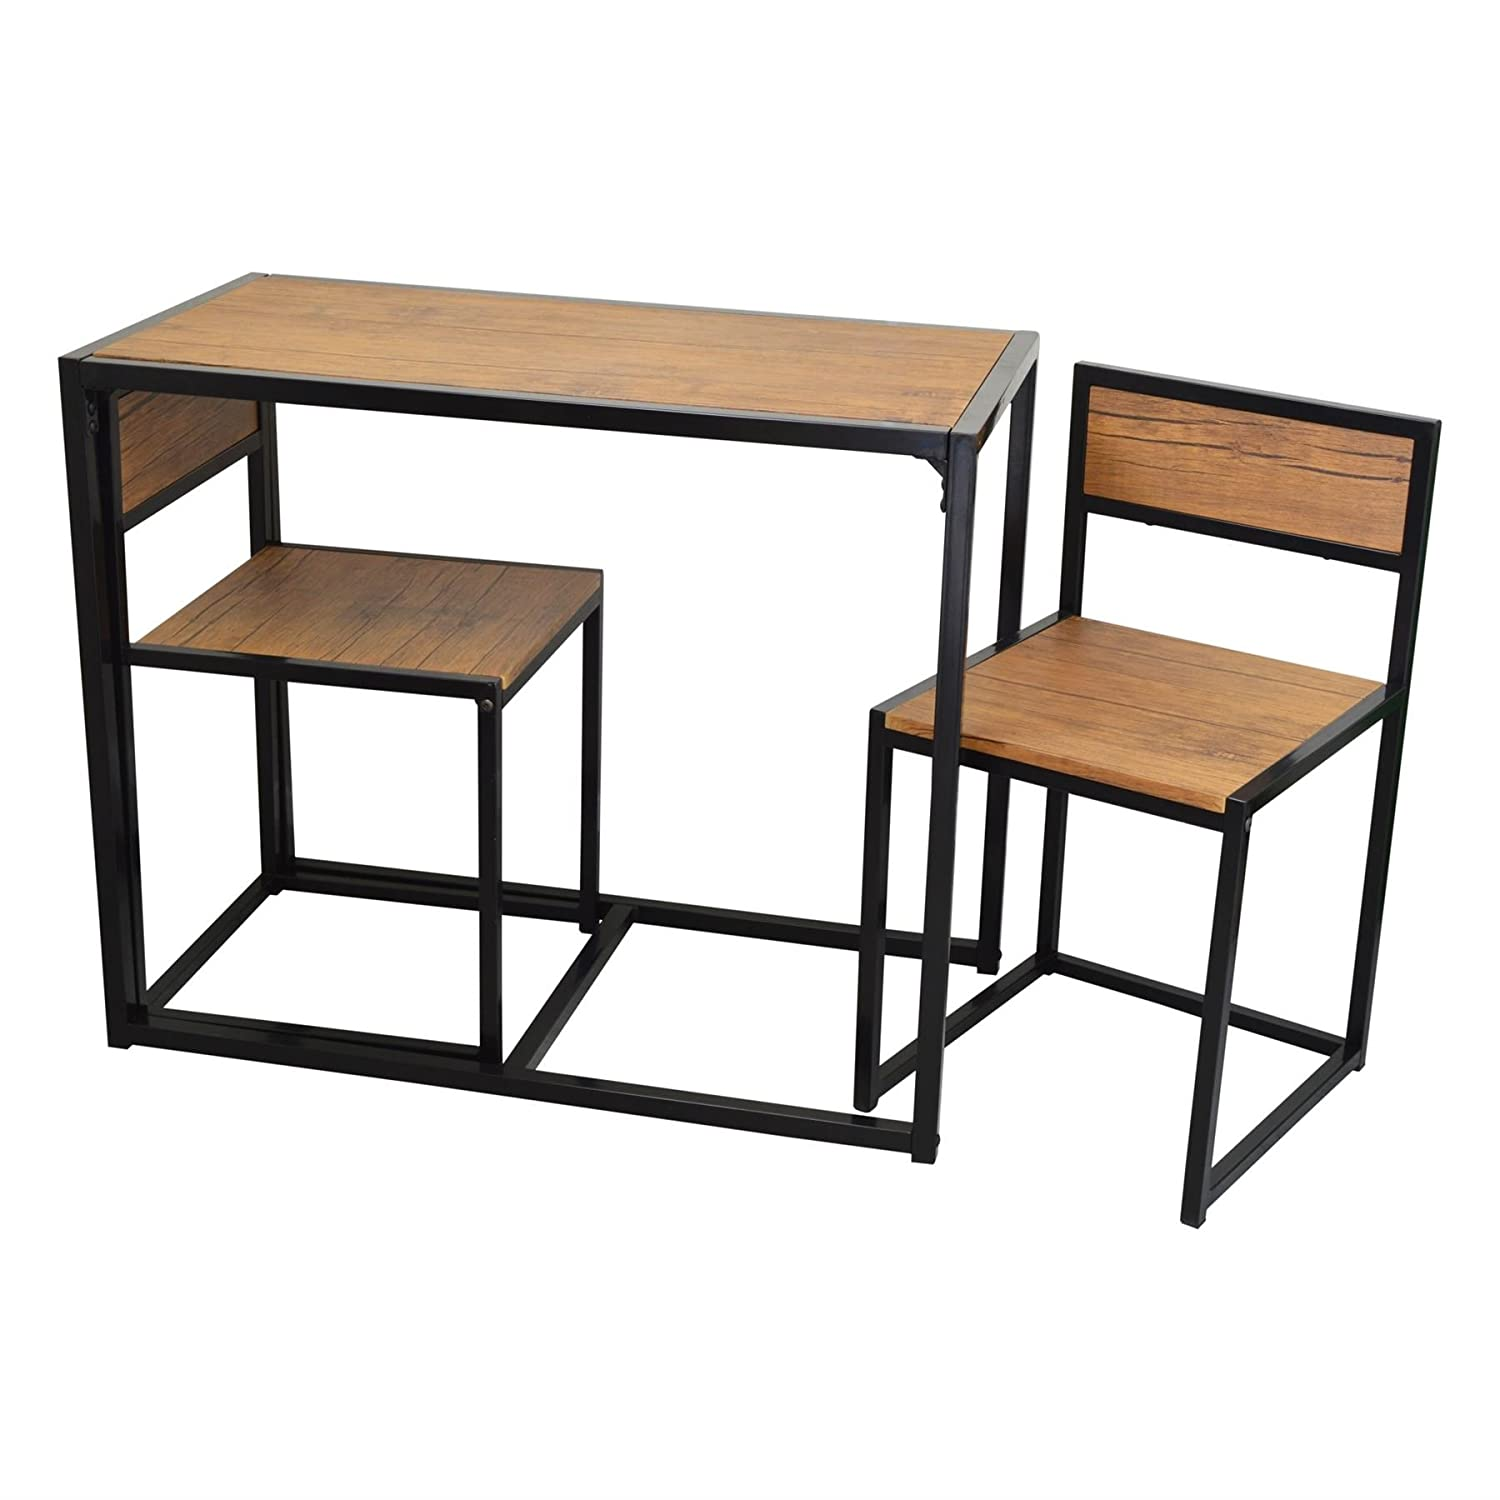 Compact Dining Table And Chairs: Dining Table And 2 Chairs Set Small Kitchen Space Saver